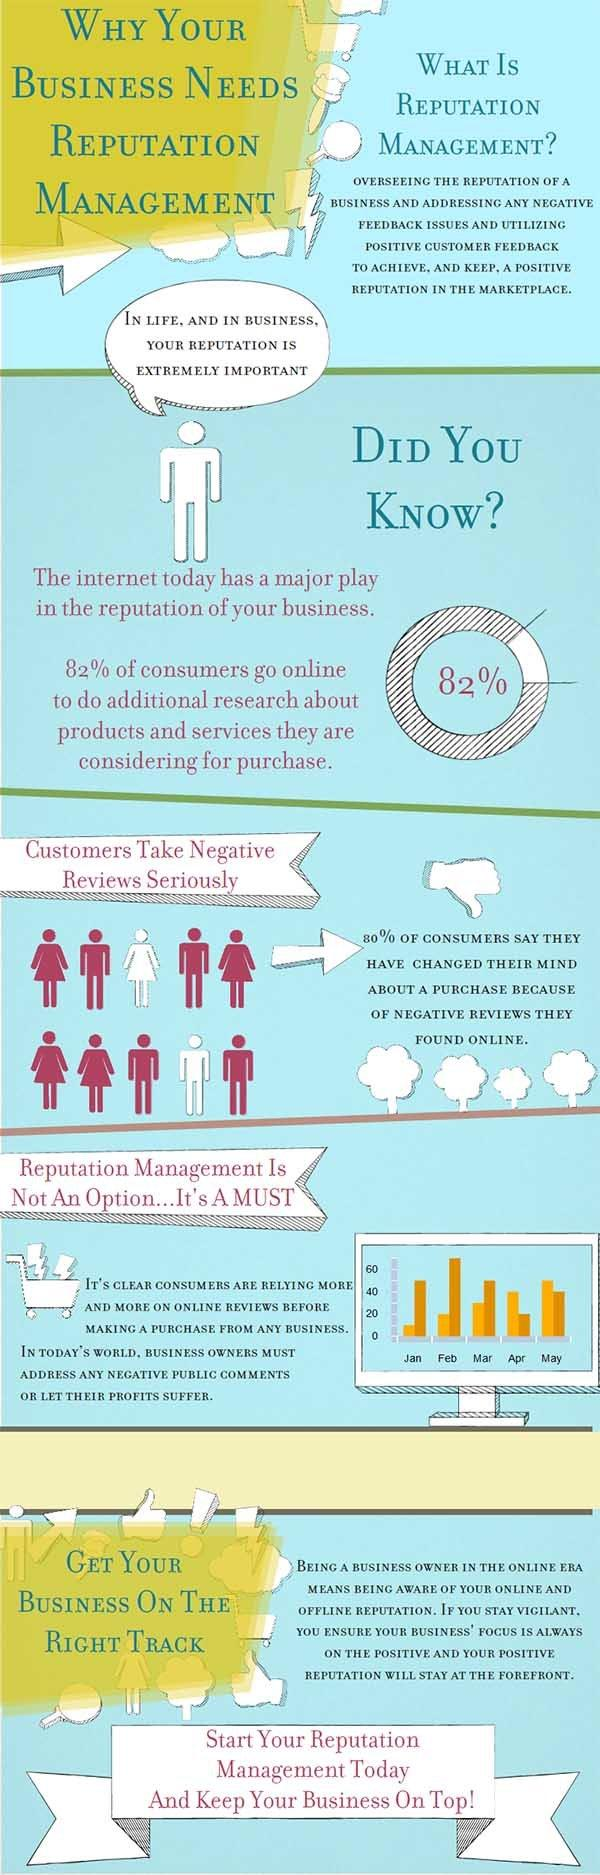 Why your business needs reputation management #infographic